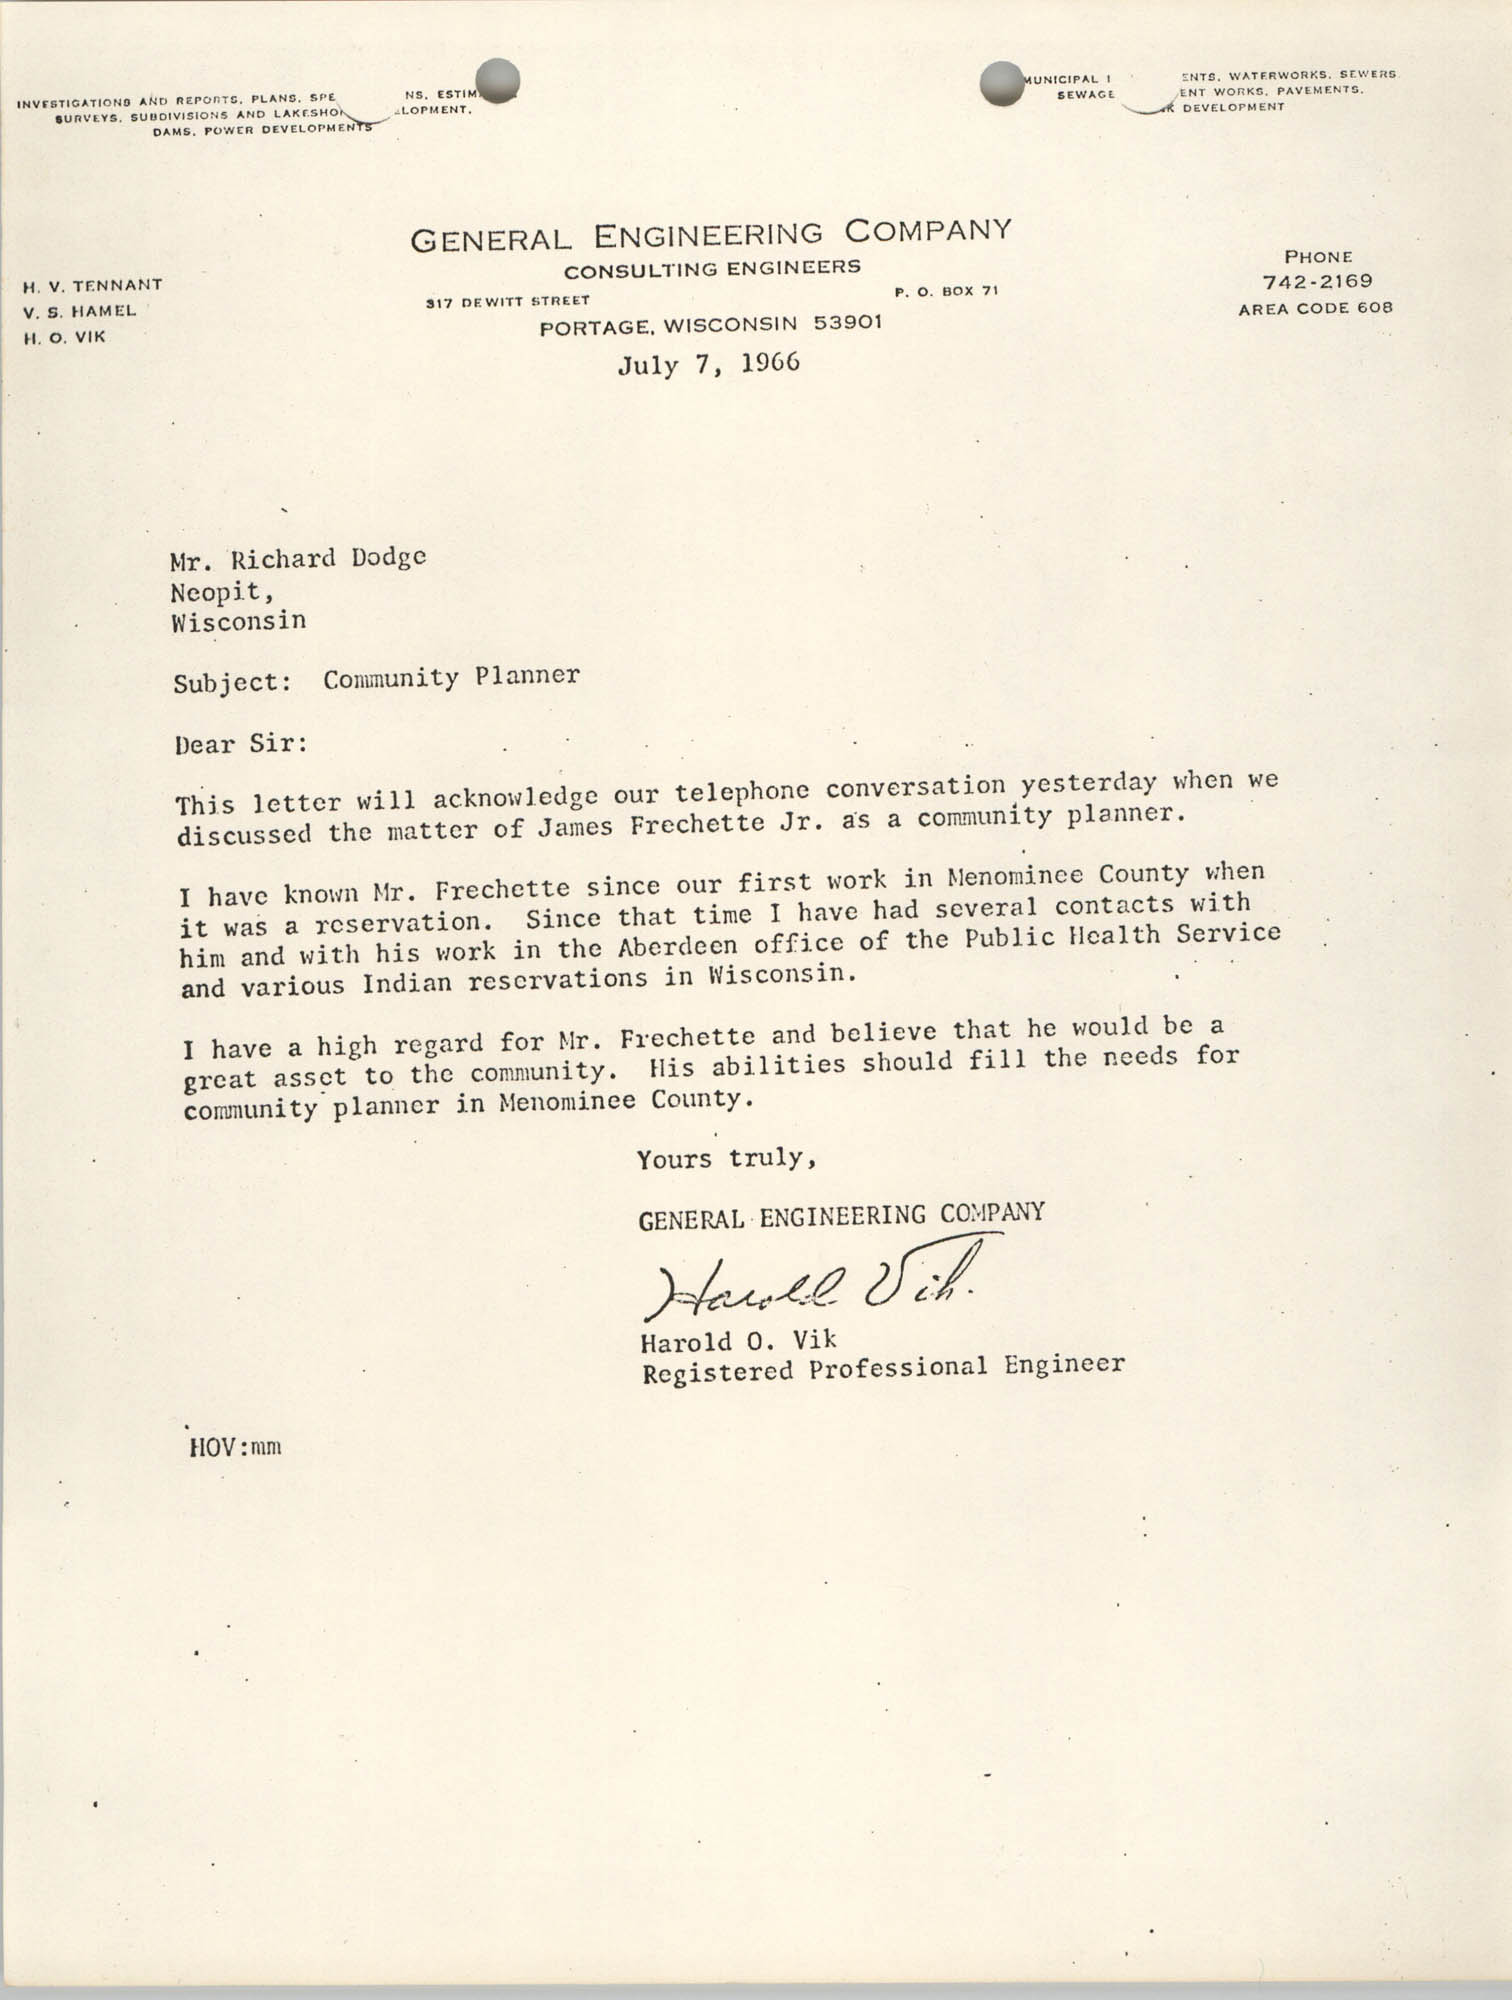 Letter from Harold O. Vik to Richard Dodge, July 7, 1966